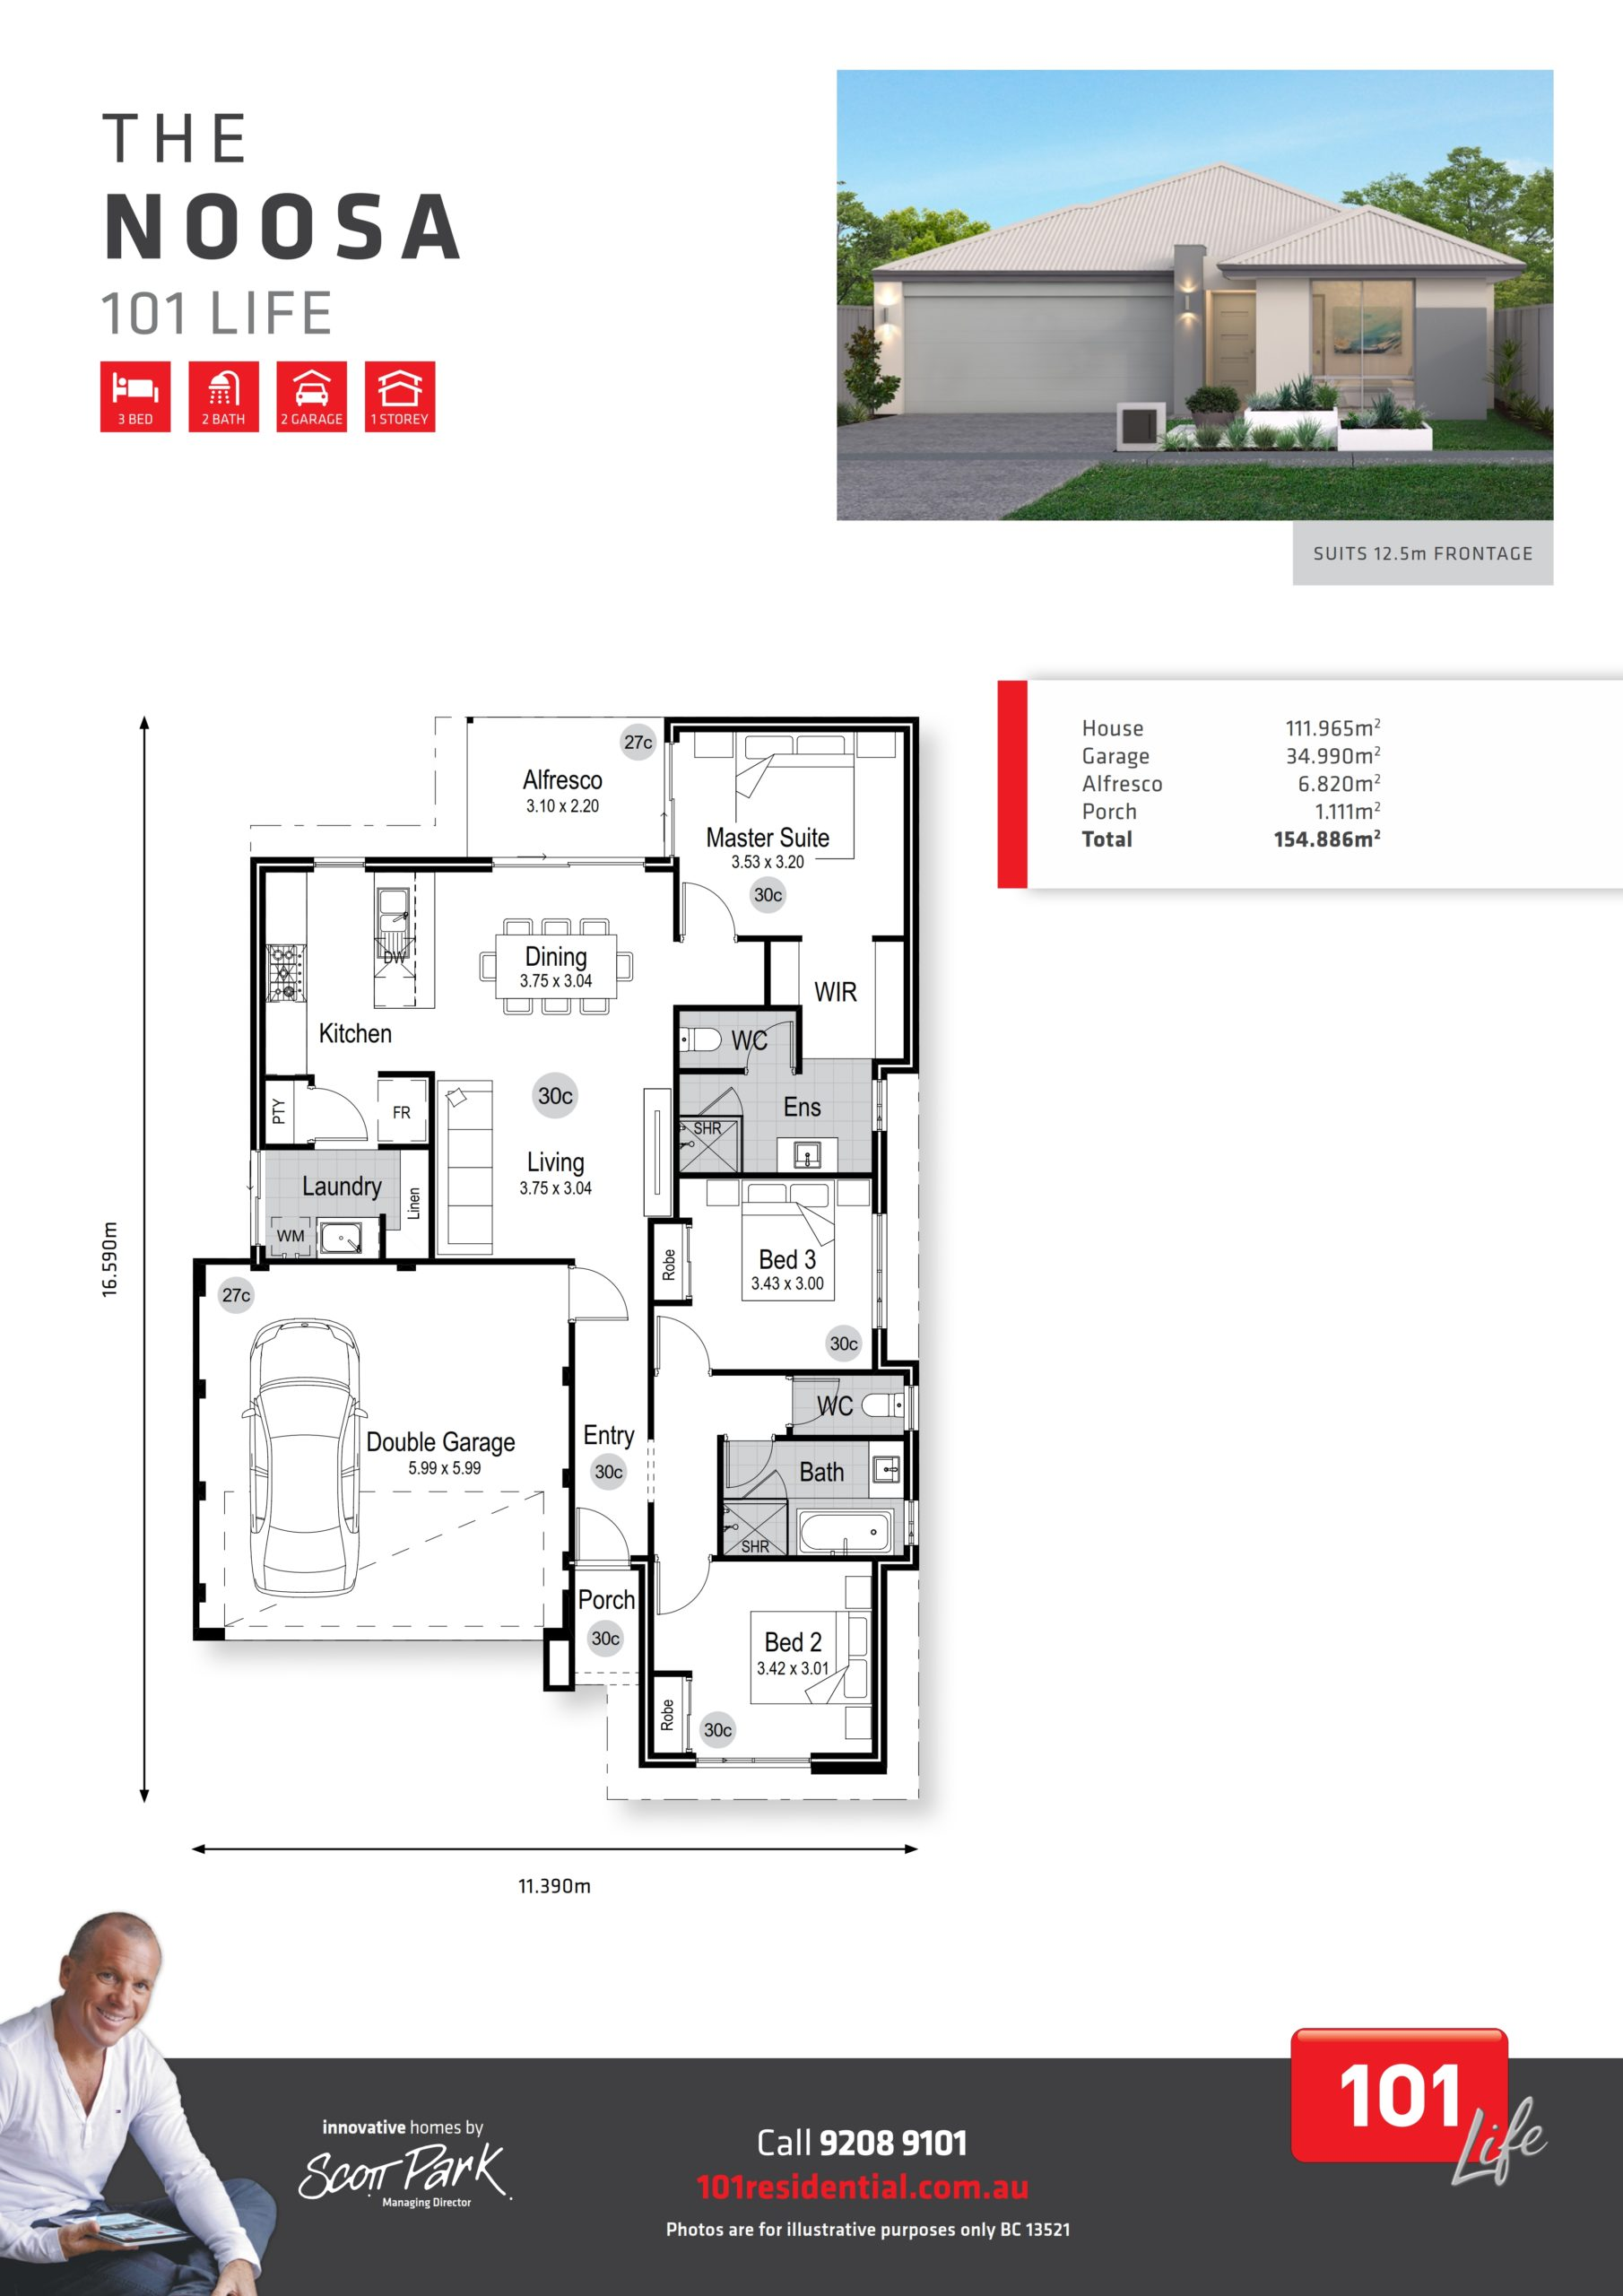 101 Life A3 Floor Plan - Noosa WEB_001